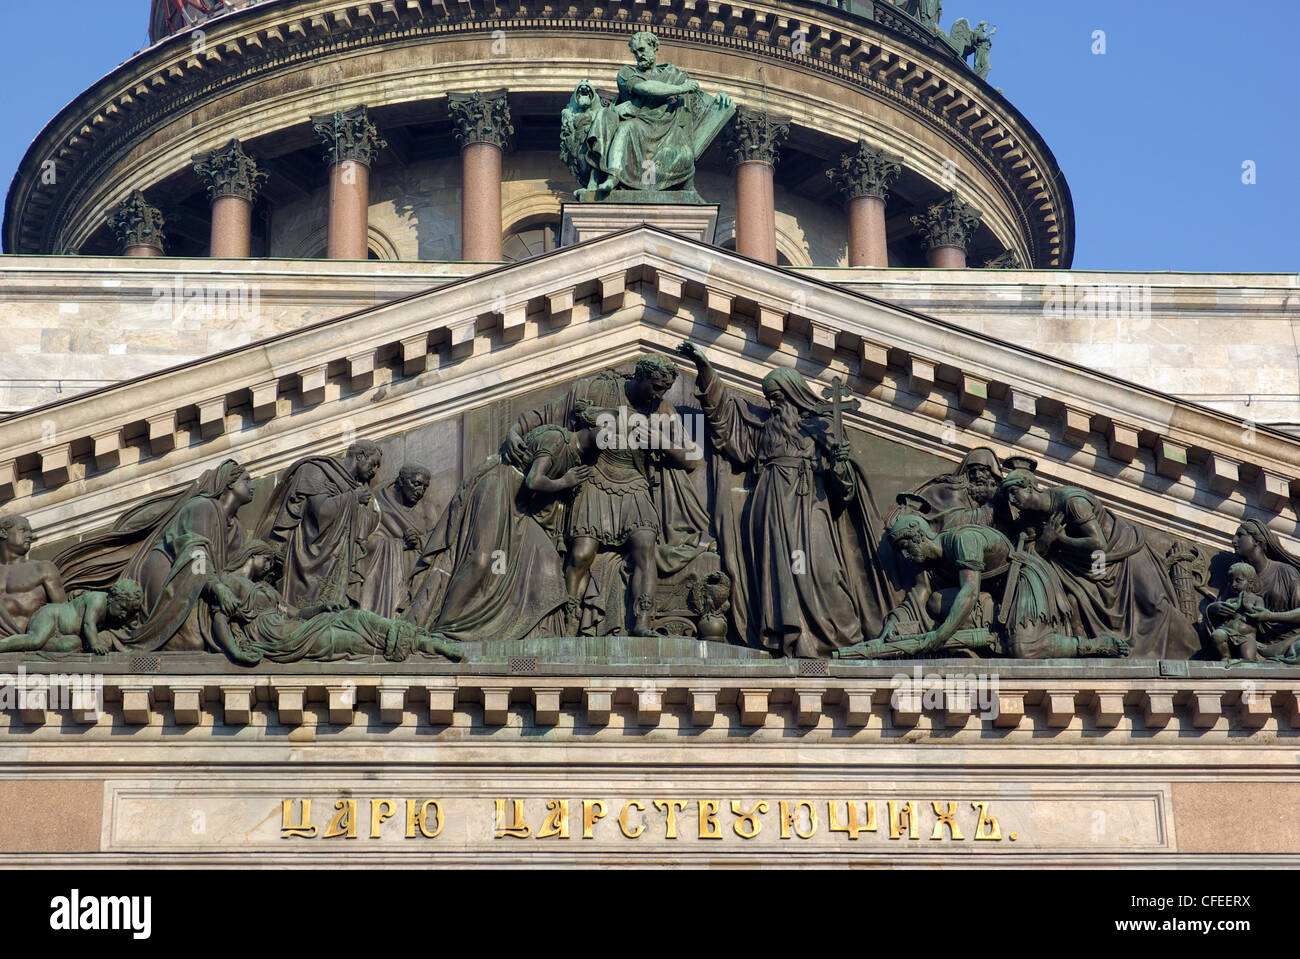 Russia. St. Petersburg. St. Isaac's Cathedral. Detail of the western facade. The inscription 'King of kings'. - Stock Image